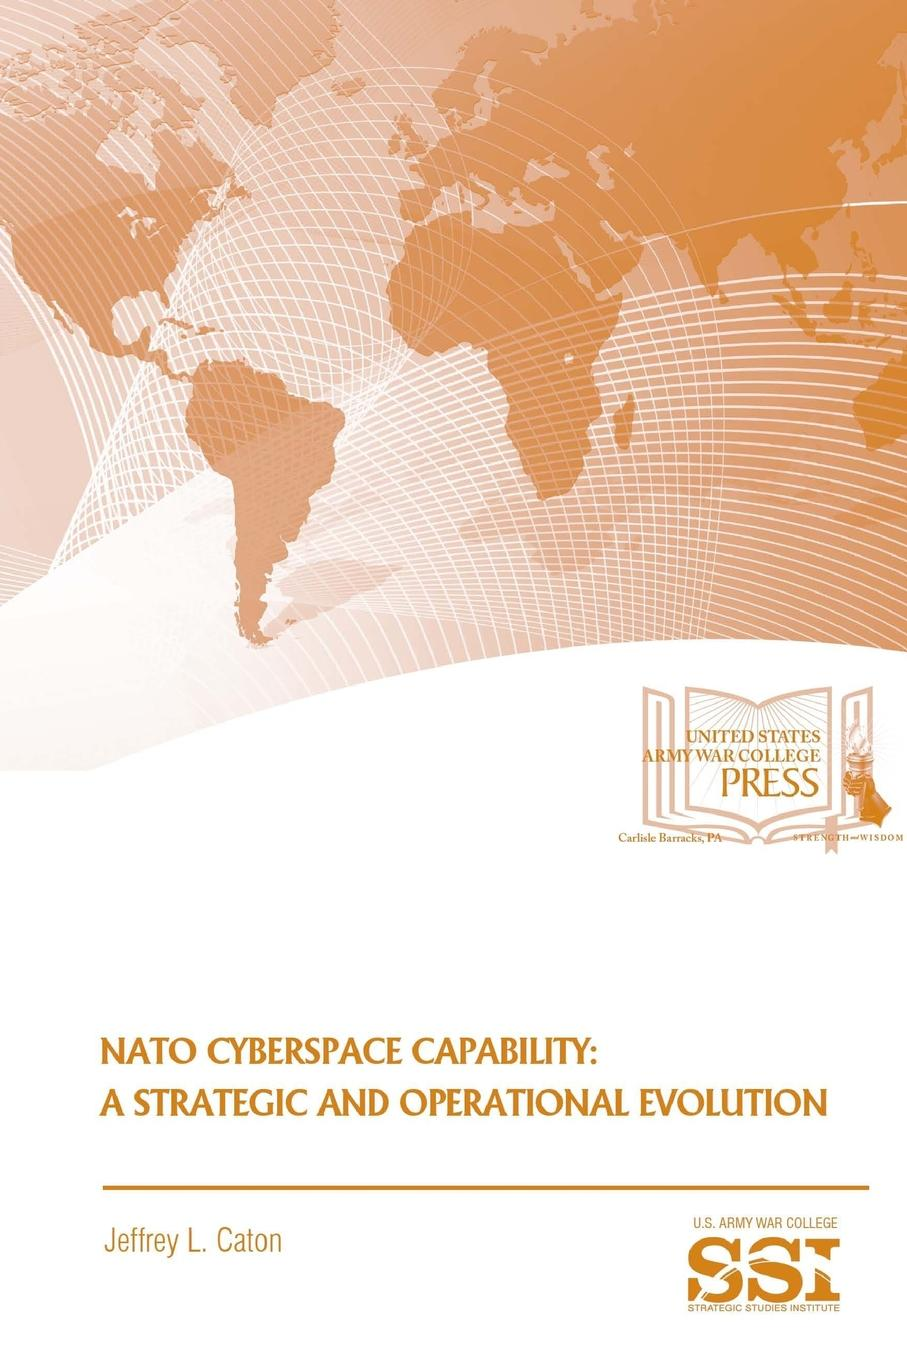 Jeffrey L. Caton, Strategic Studies Institute (SSI) Nato Cyberspace Capability. A And Operational Evolution